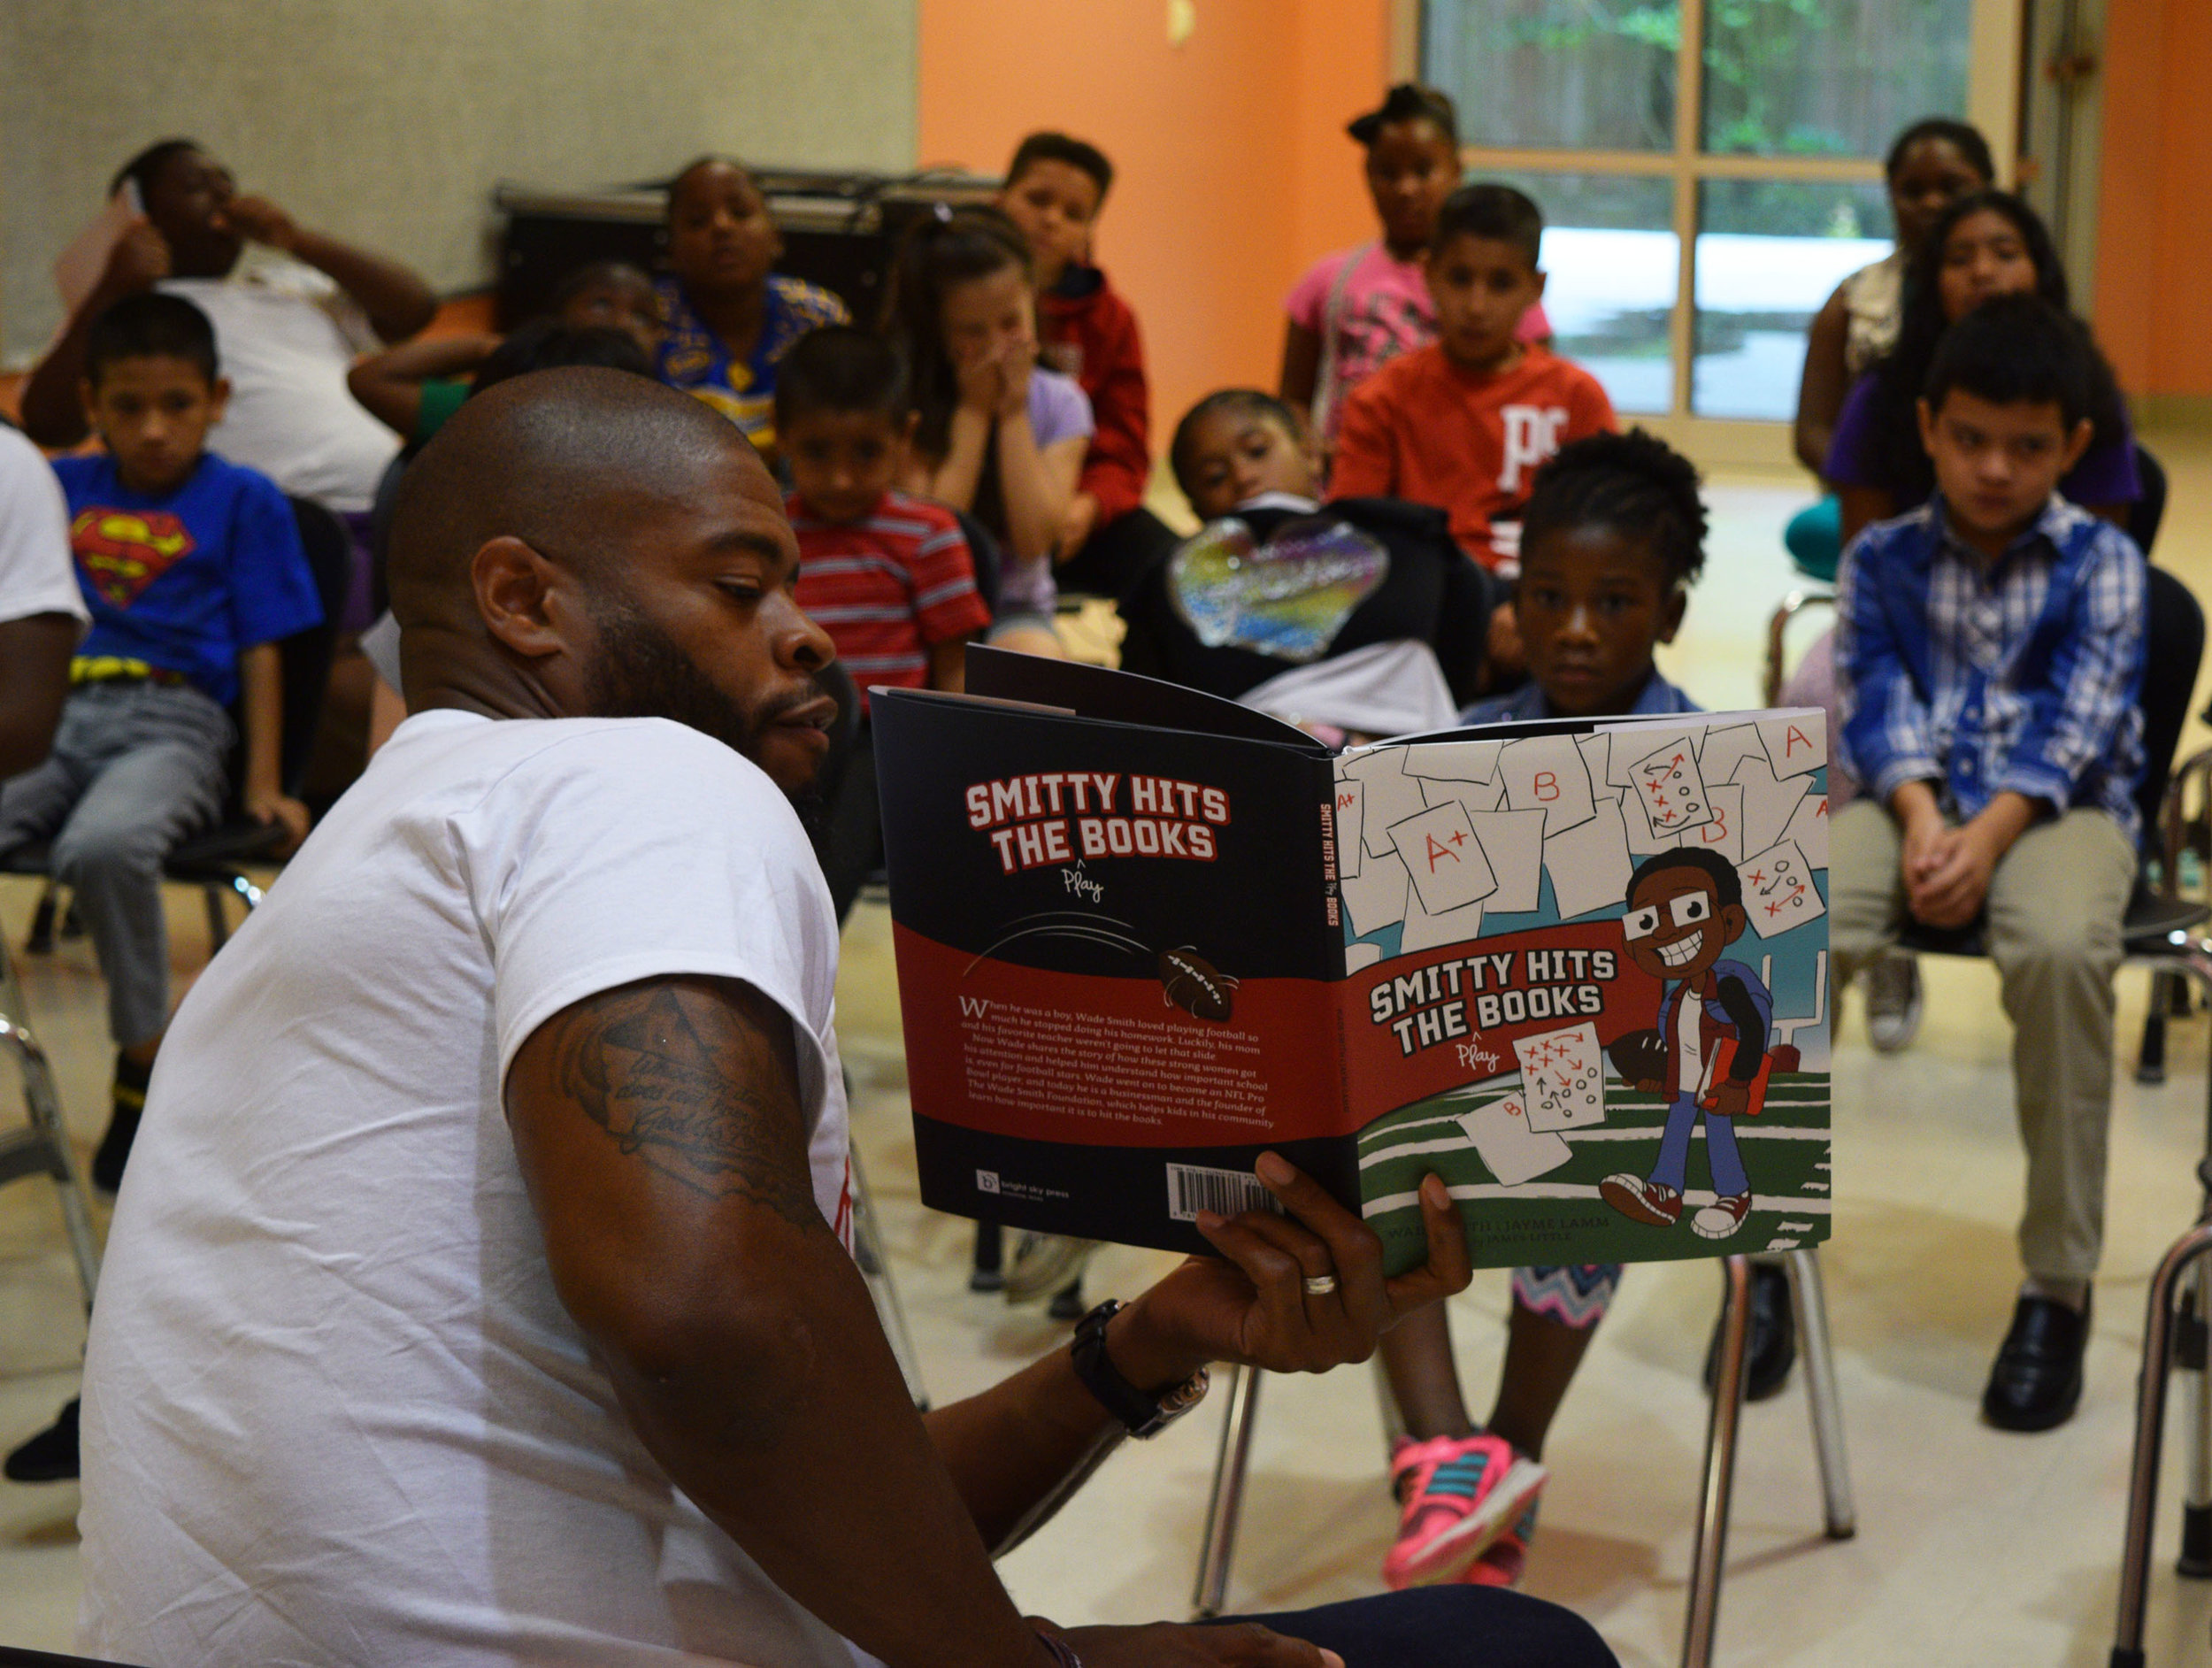 Wade reads to a group of students during the Summer Reading Camps at Highland Heights Elementary School in HISD.